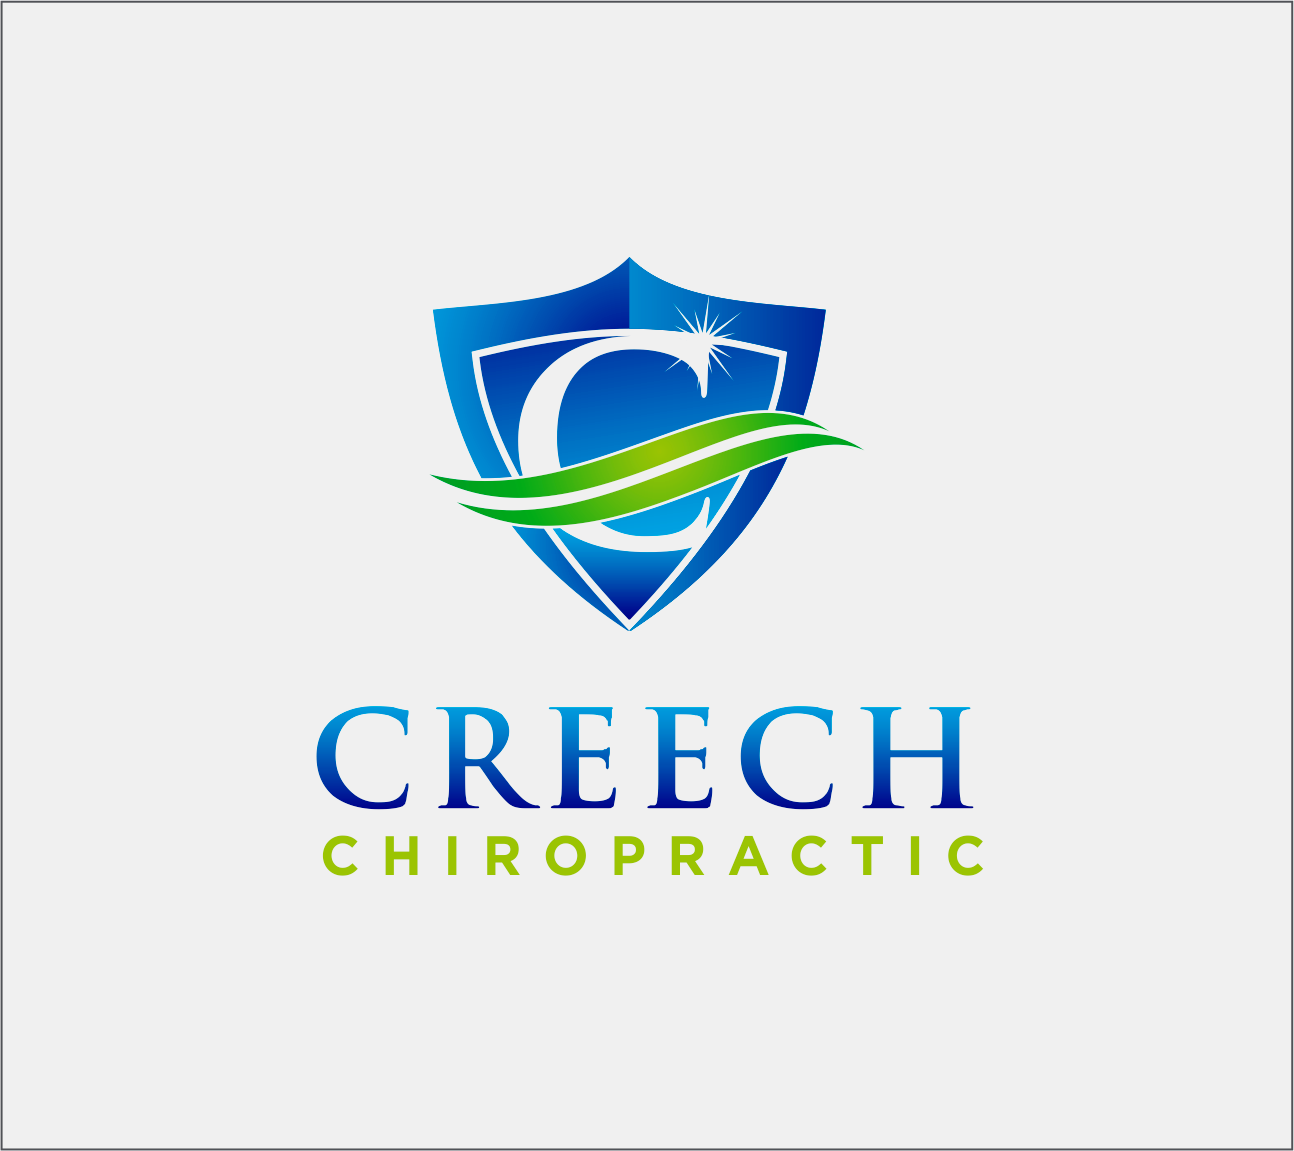 Logo Design by Armada Jamaluddin - Entry No. 107 in the Logo Design Contest Imaginative Logo Design for Creech Chiropractic.